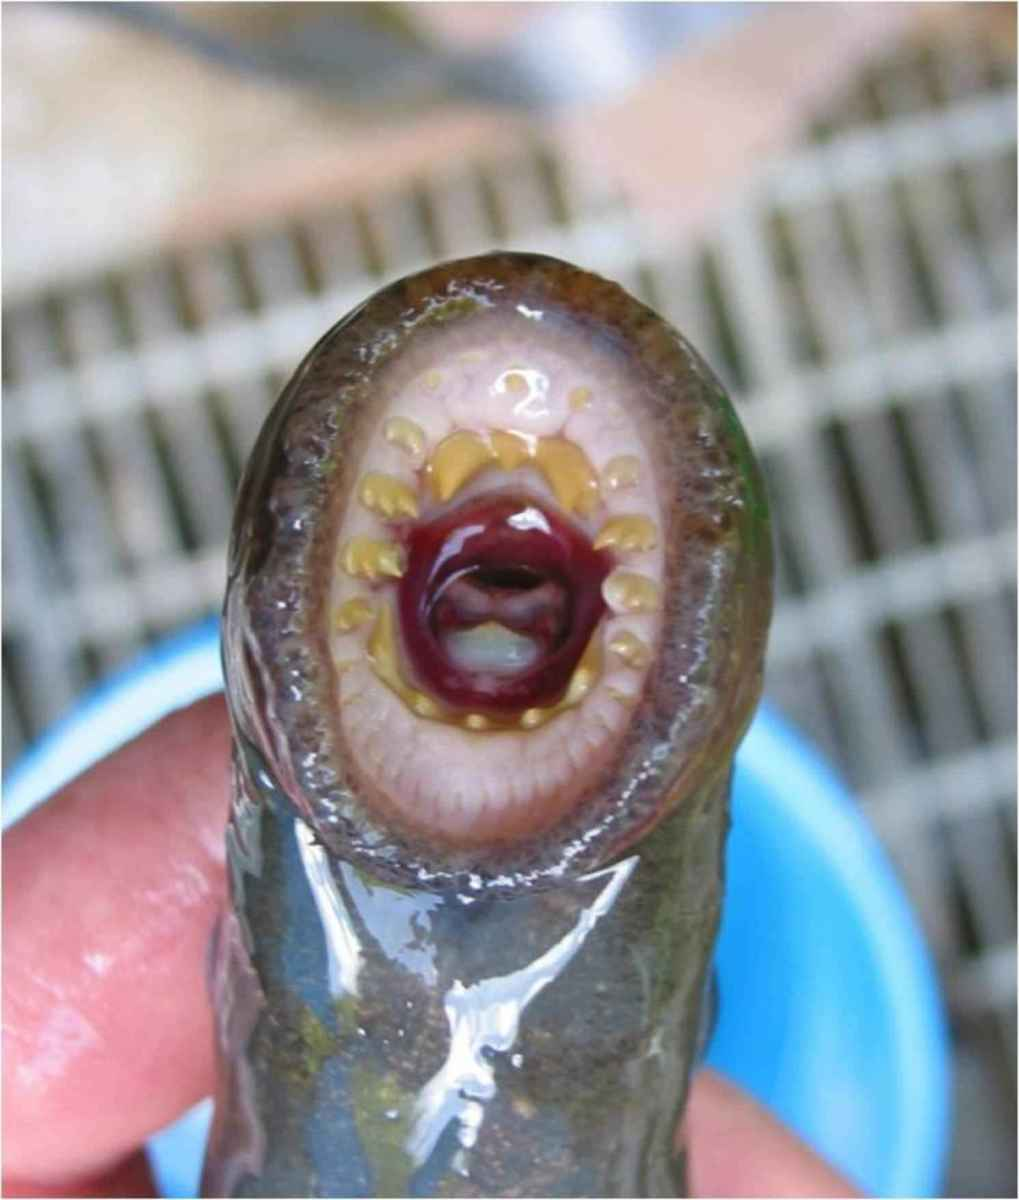 Pictured – A lamprey, it wouldn't win any beauty prizes.